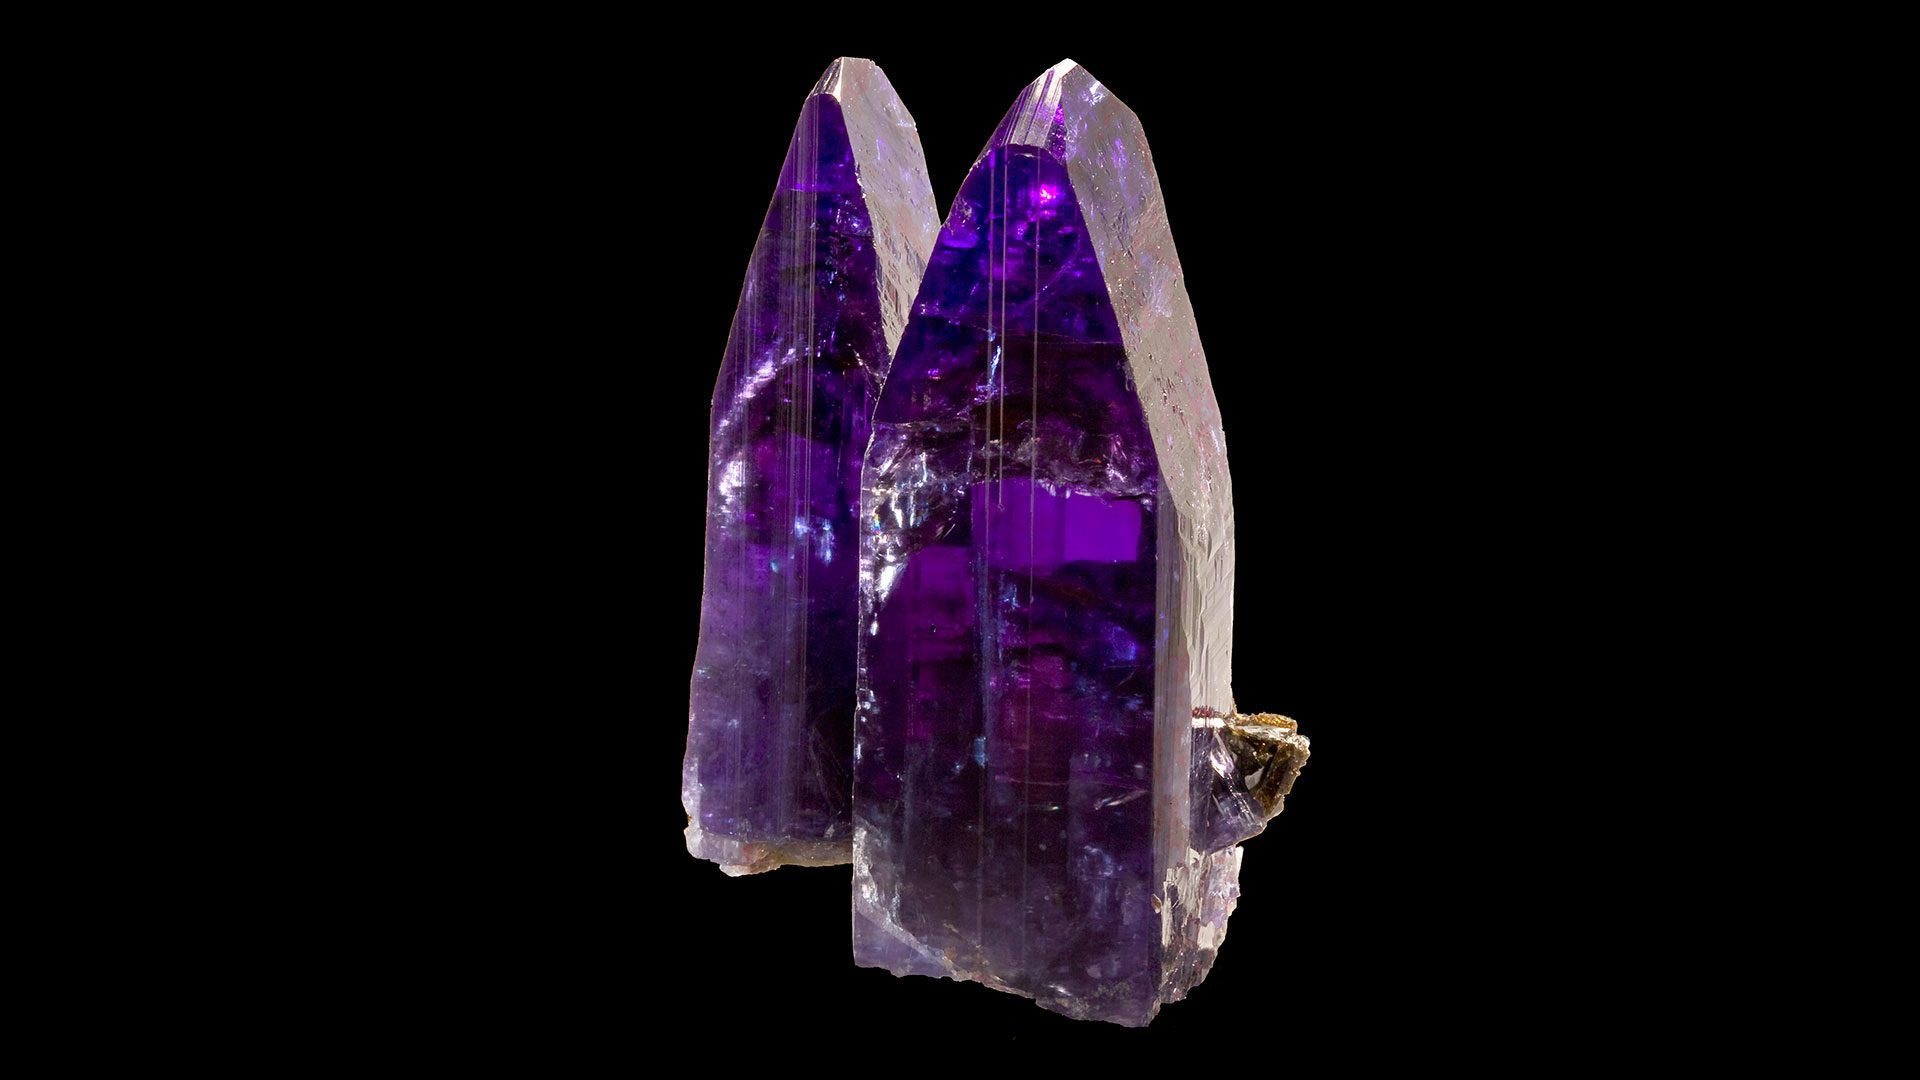 Sugilite properties and meaning photos crystal information - Tanzanite Properties And Meaning Original Photograph By Rob Lavinsky Irocks Com Background